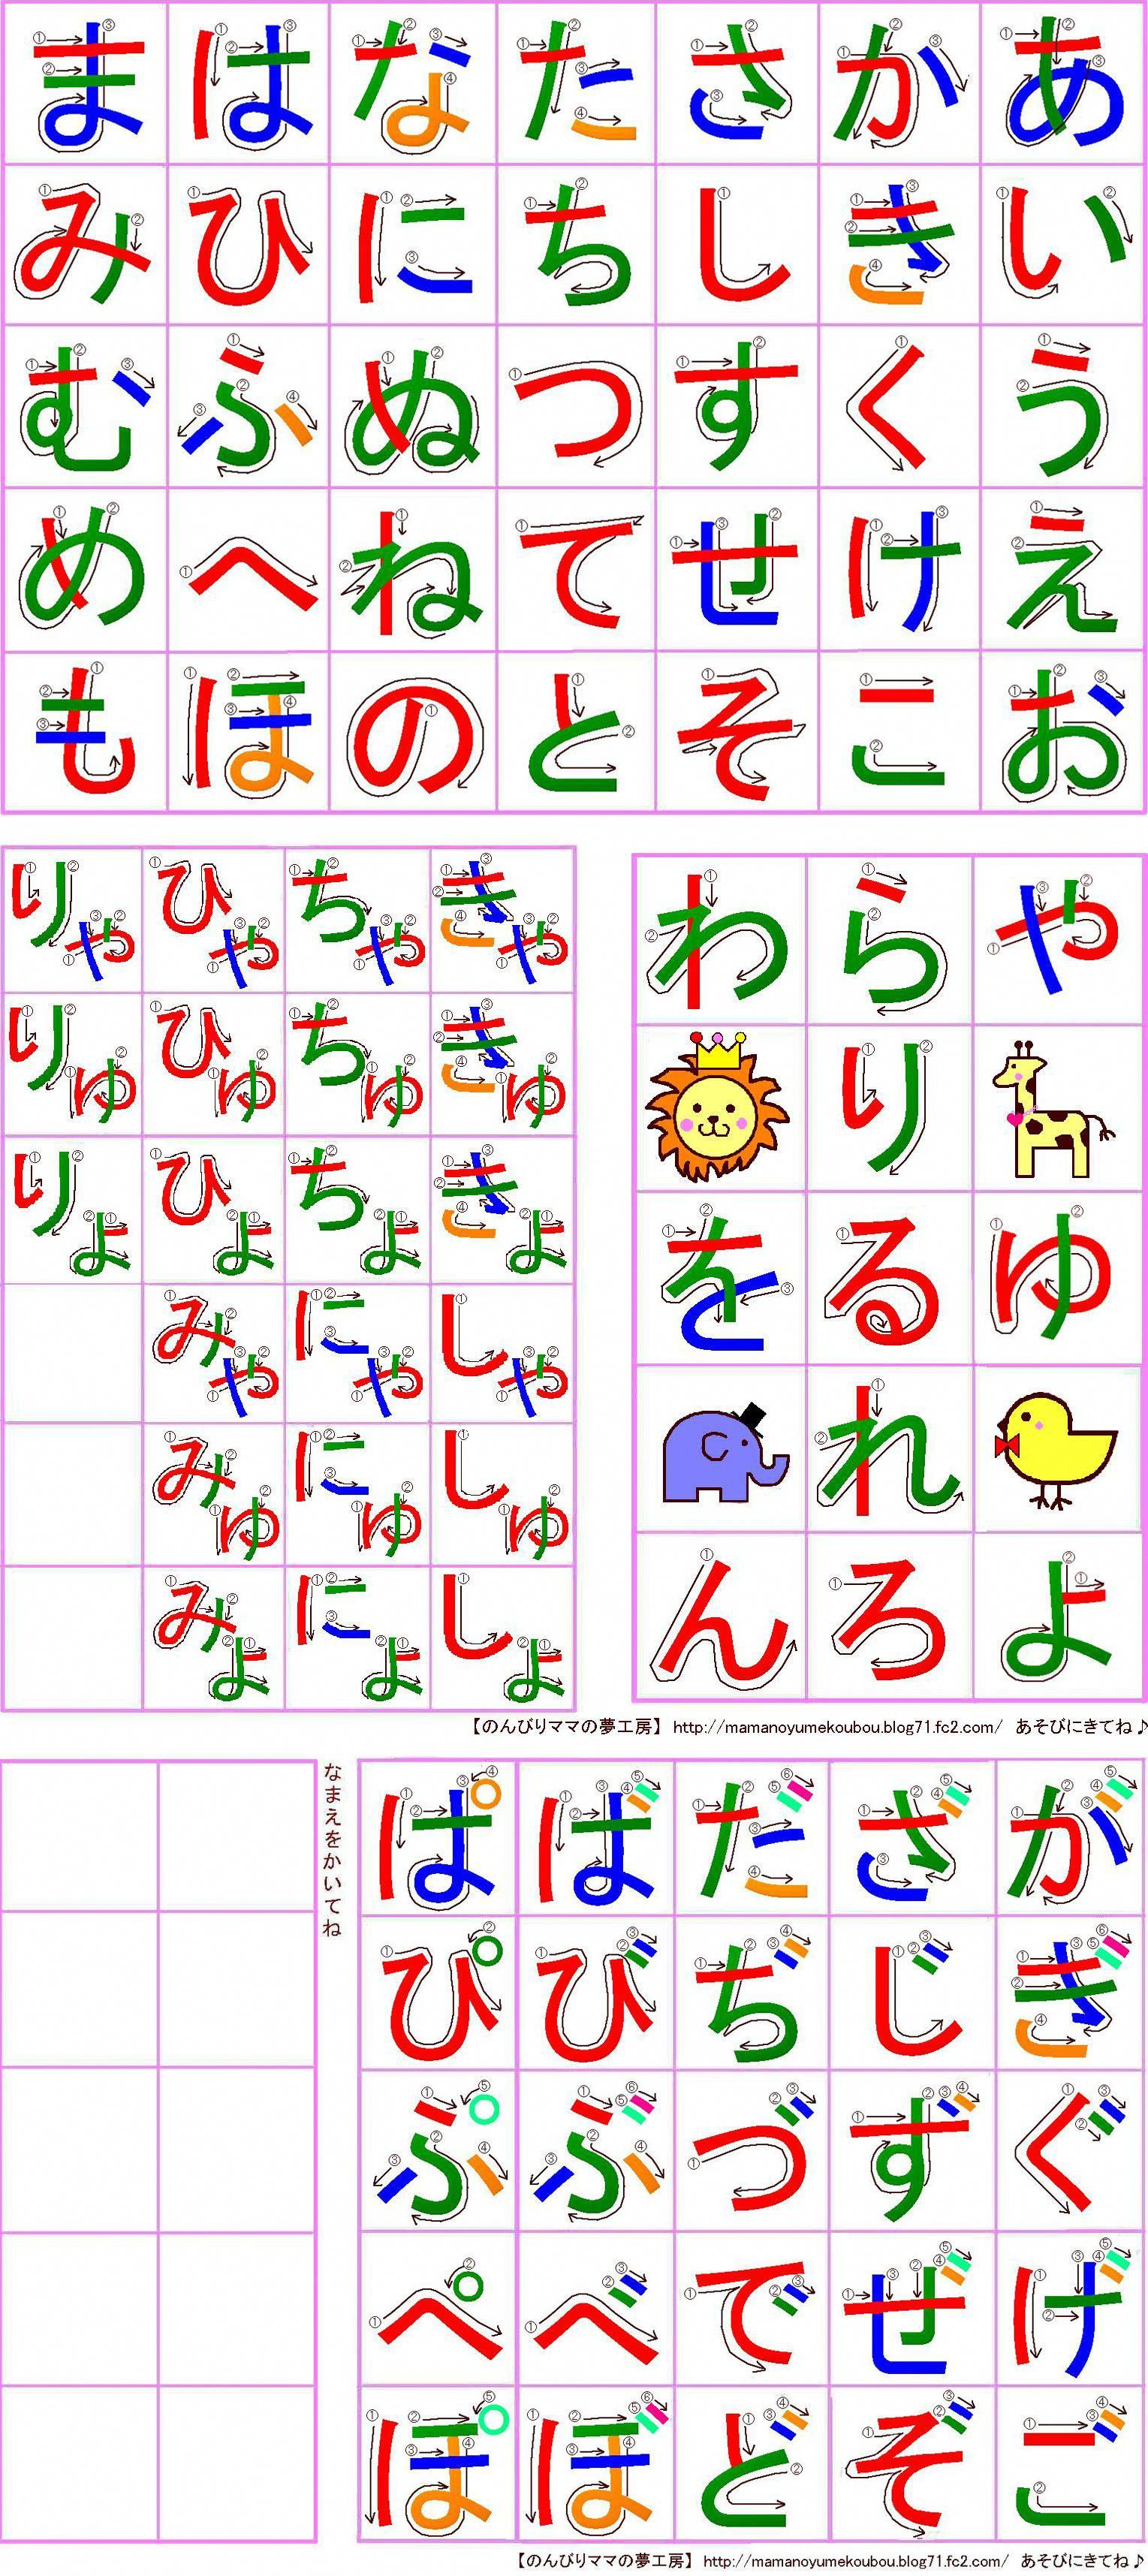 27 Hiragana Charts Stroke Order Practice Mnemonics And More Learnjapanesefast